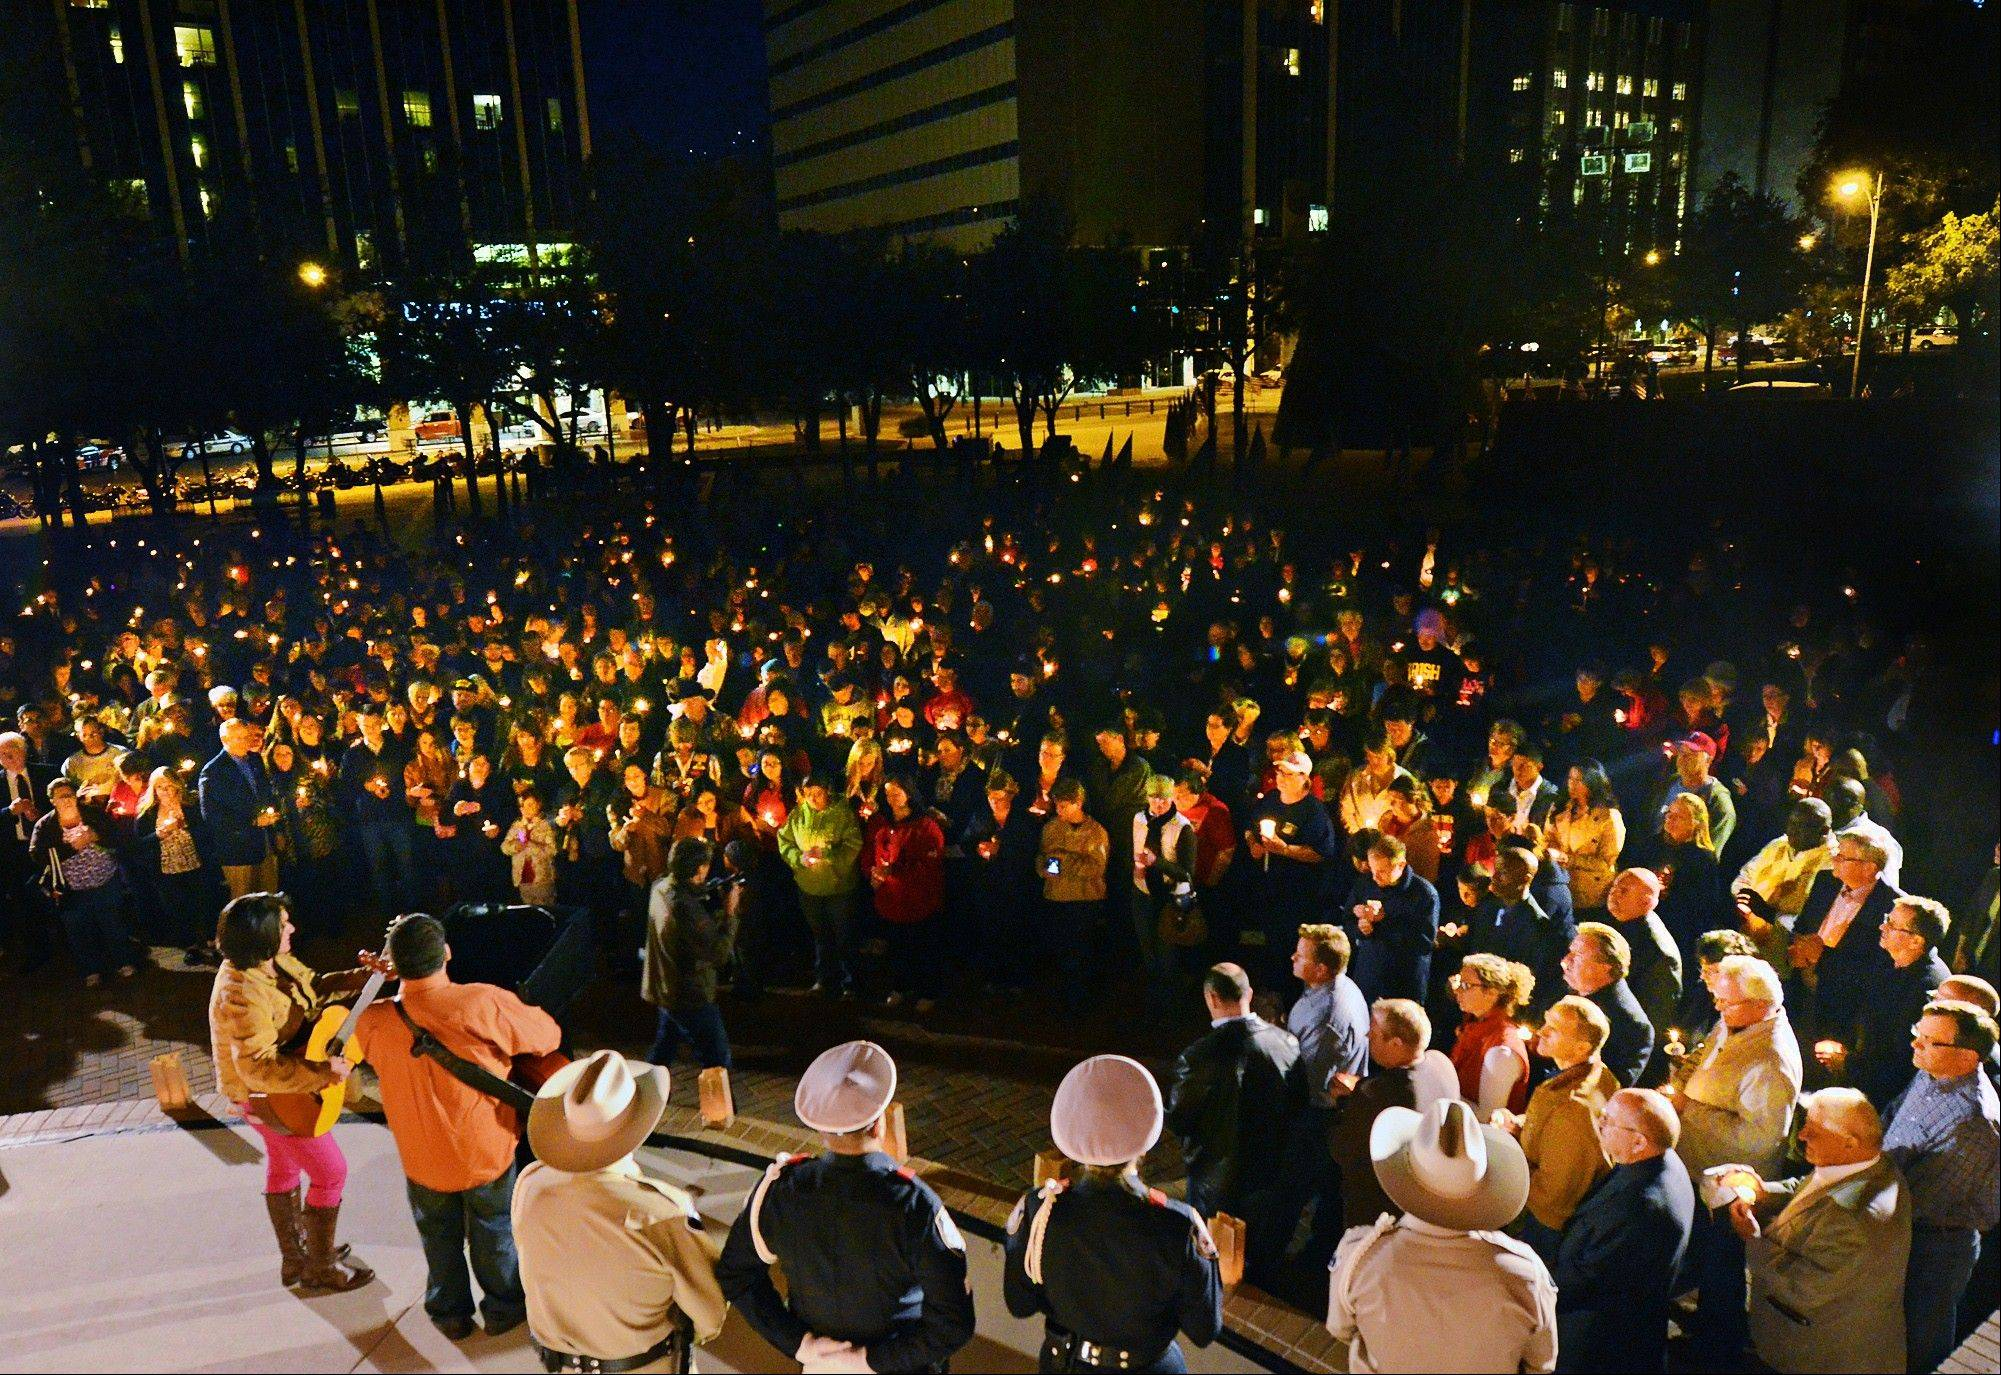 People gather Saturday in Centennial Plaza in Midland, Texas for a candlelight vigil held in honor of four veterans who were killed when a freight train hit a parade float Thursday.